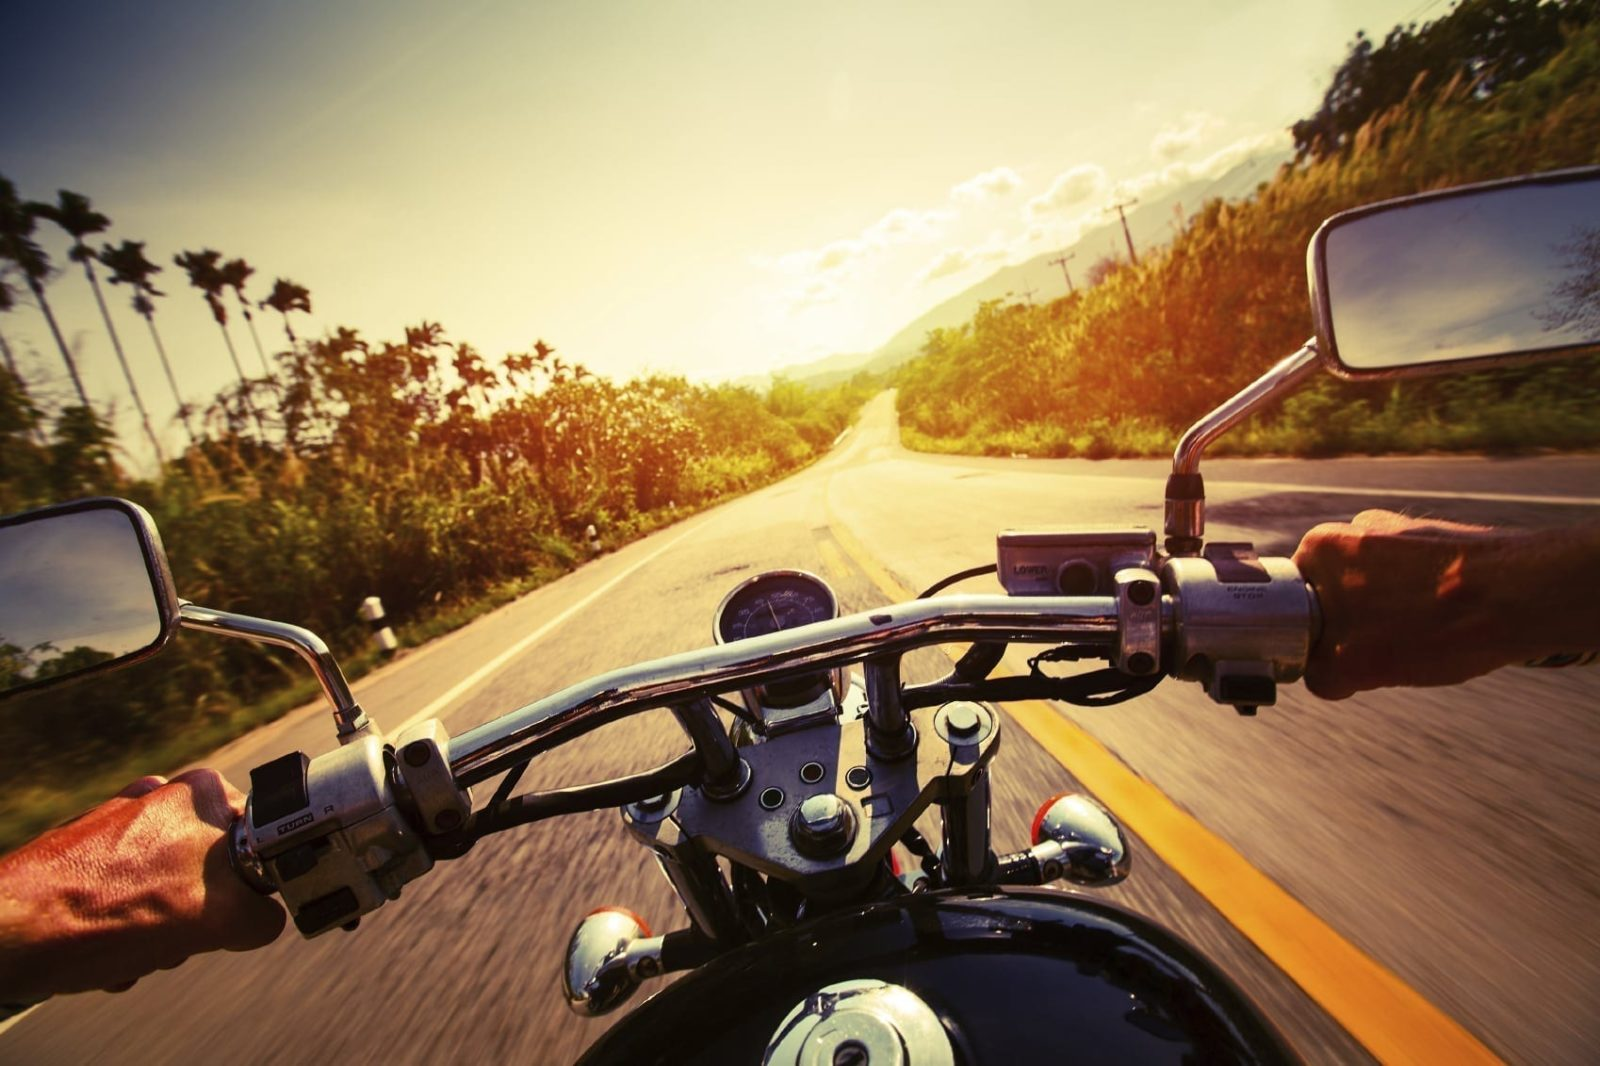 Man Riding A Motorcycle Stock Photo